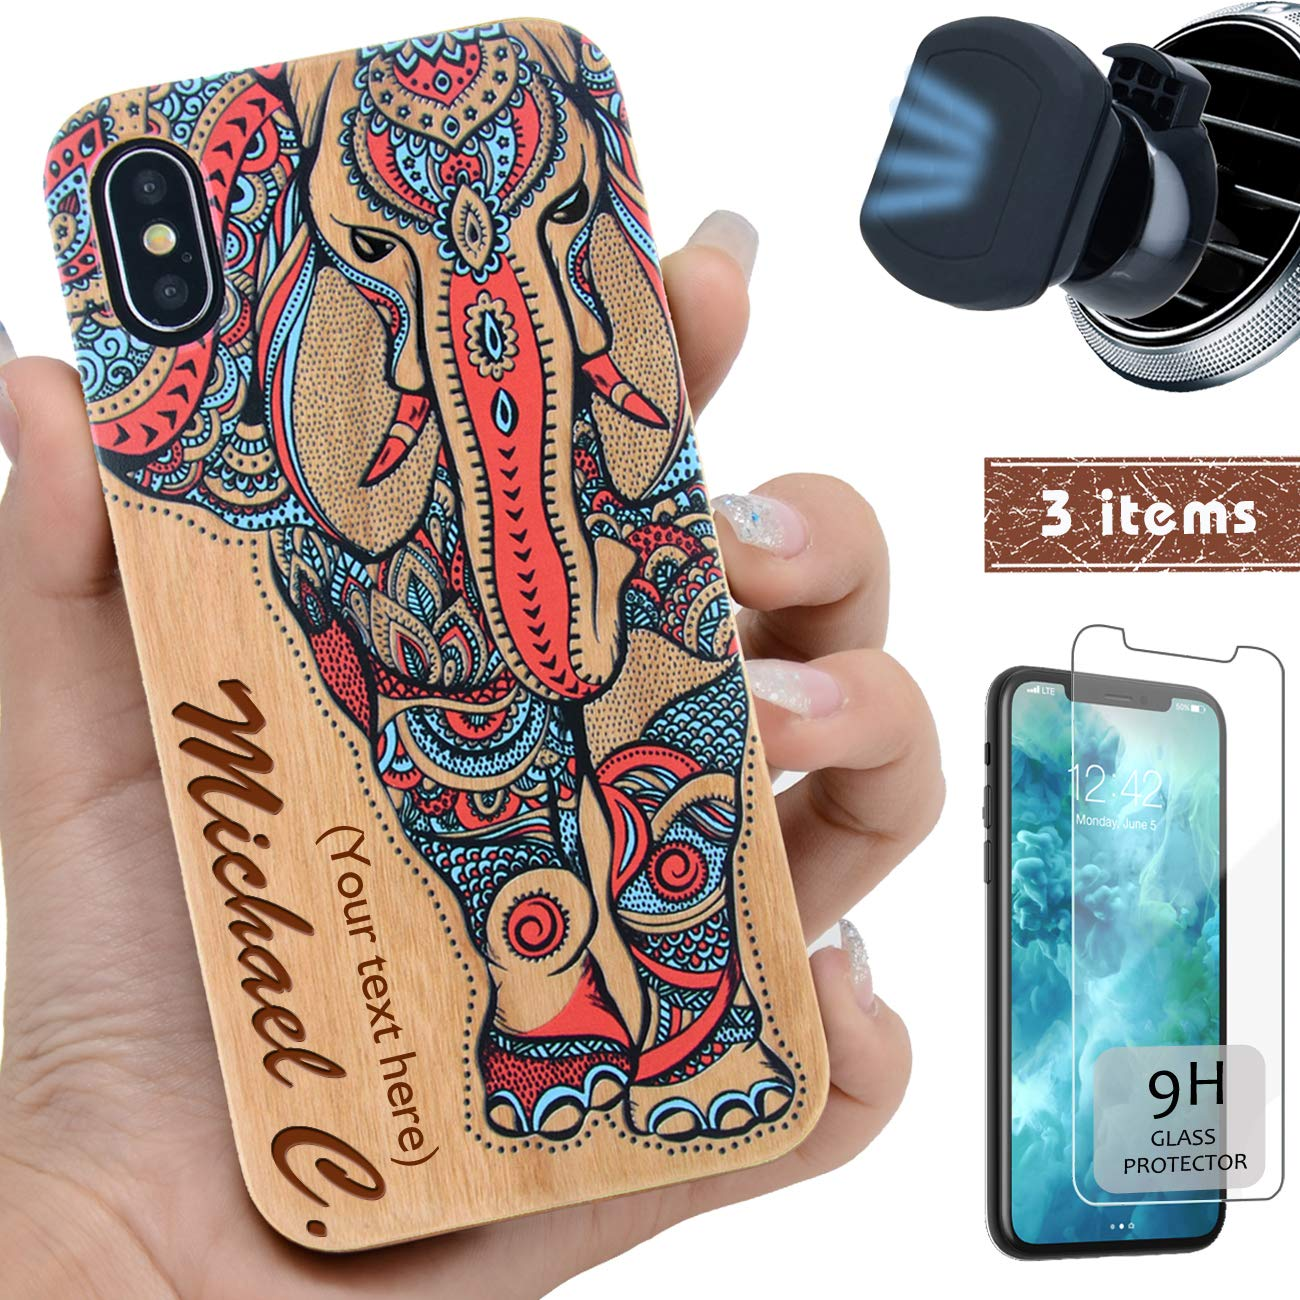 """iProductsUS Wood Phone Case Compatible with iPhone XS MAX,Magnetic Mount & Screen Protector-3D UV Print Color Elephant, Engrave Name,Compatible Wireless Charger,TPU & Metal Plate Built-in Covers(6.5"""")"""